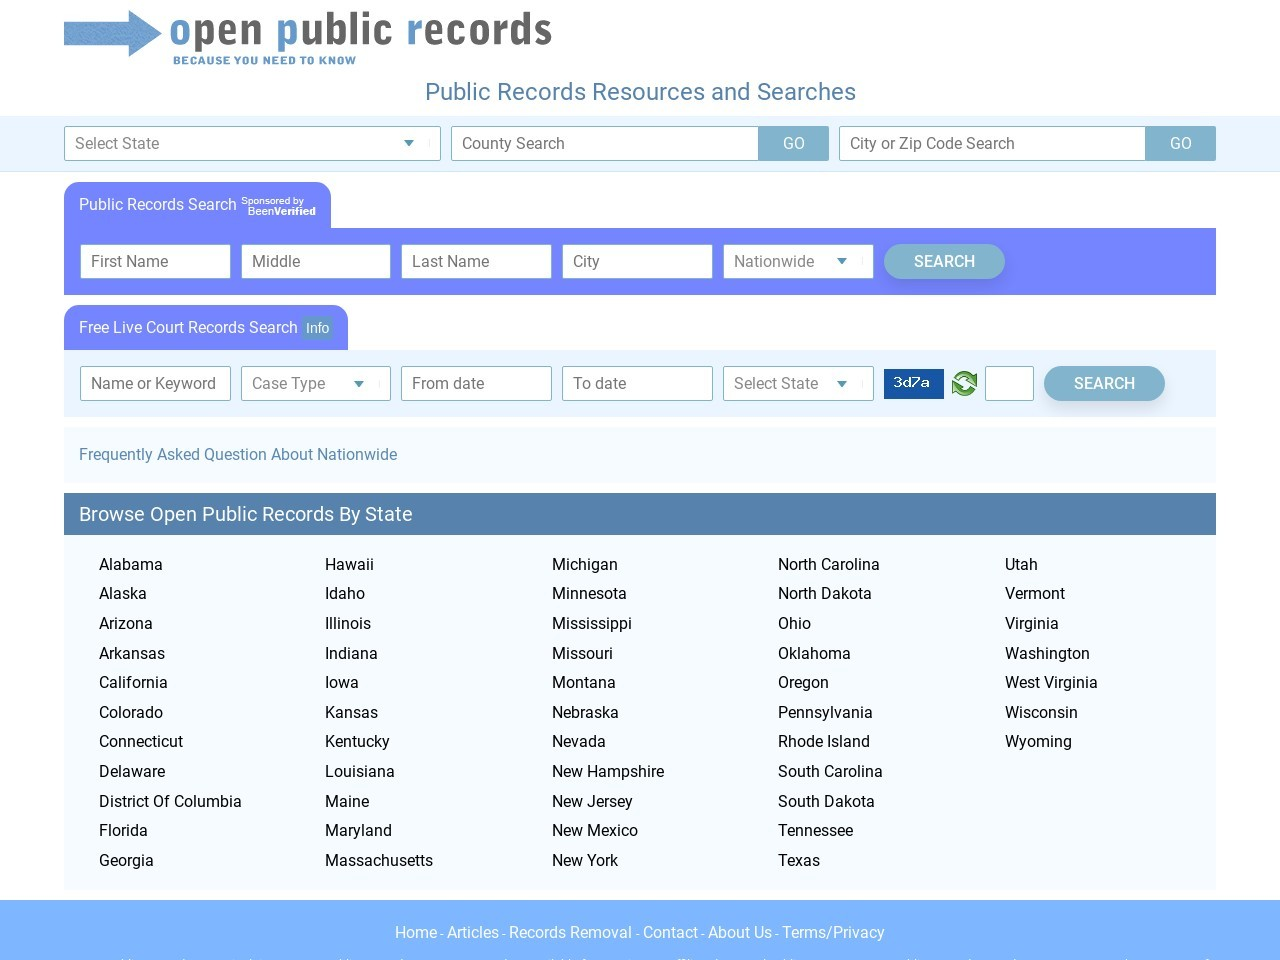 open-public-records.com